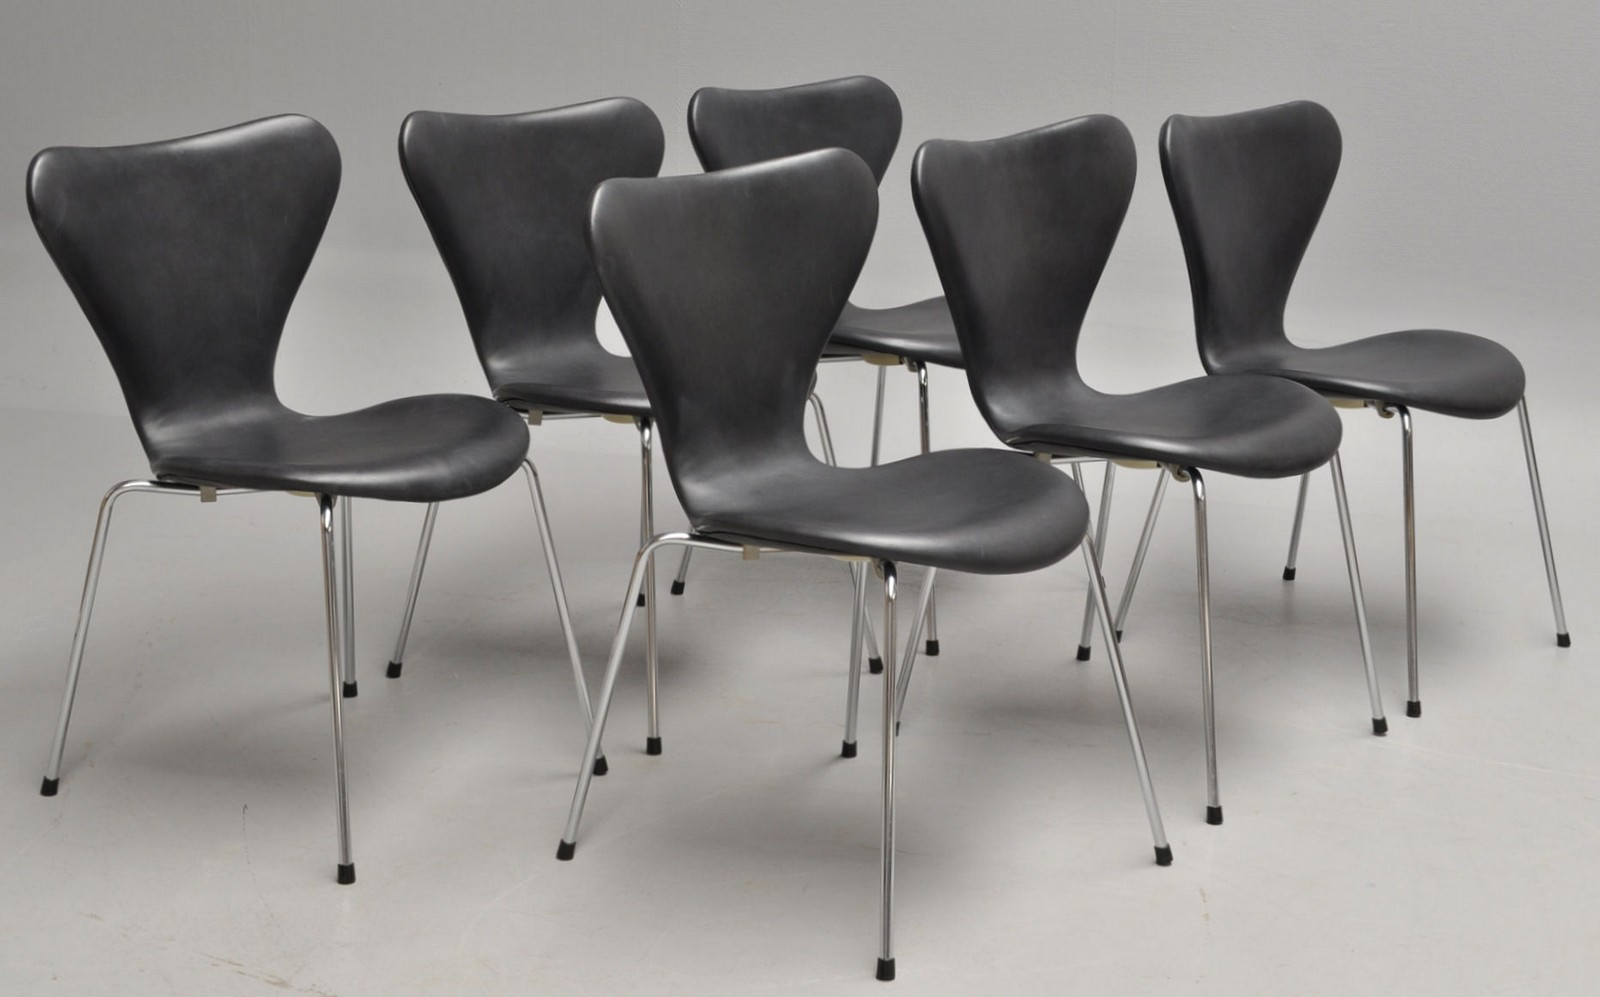 Arne Jacobsen. Six Series 7 chairs, black Calvados leather (6)